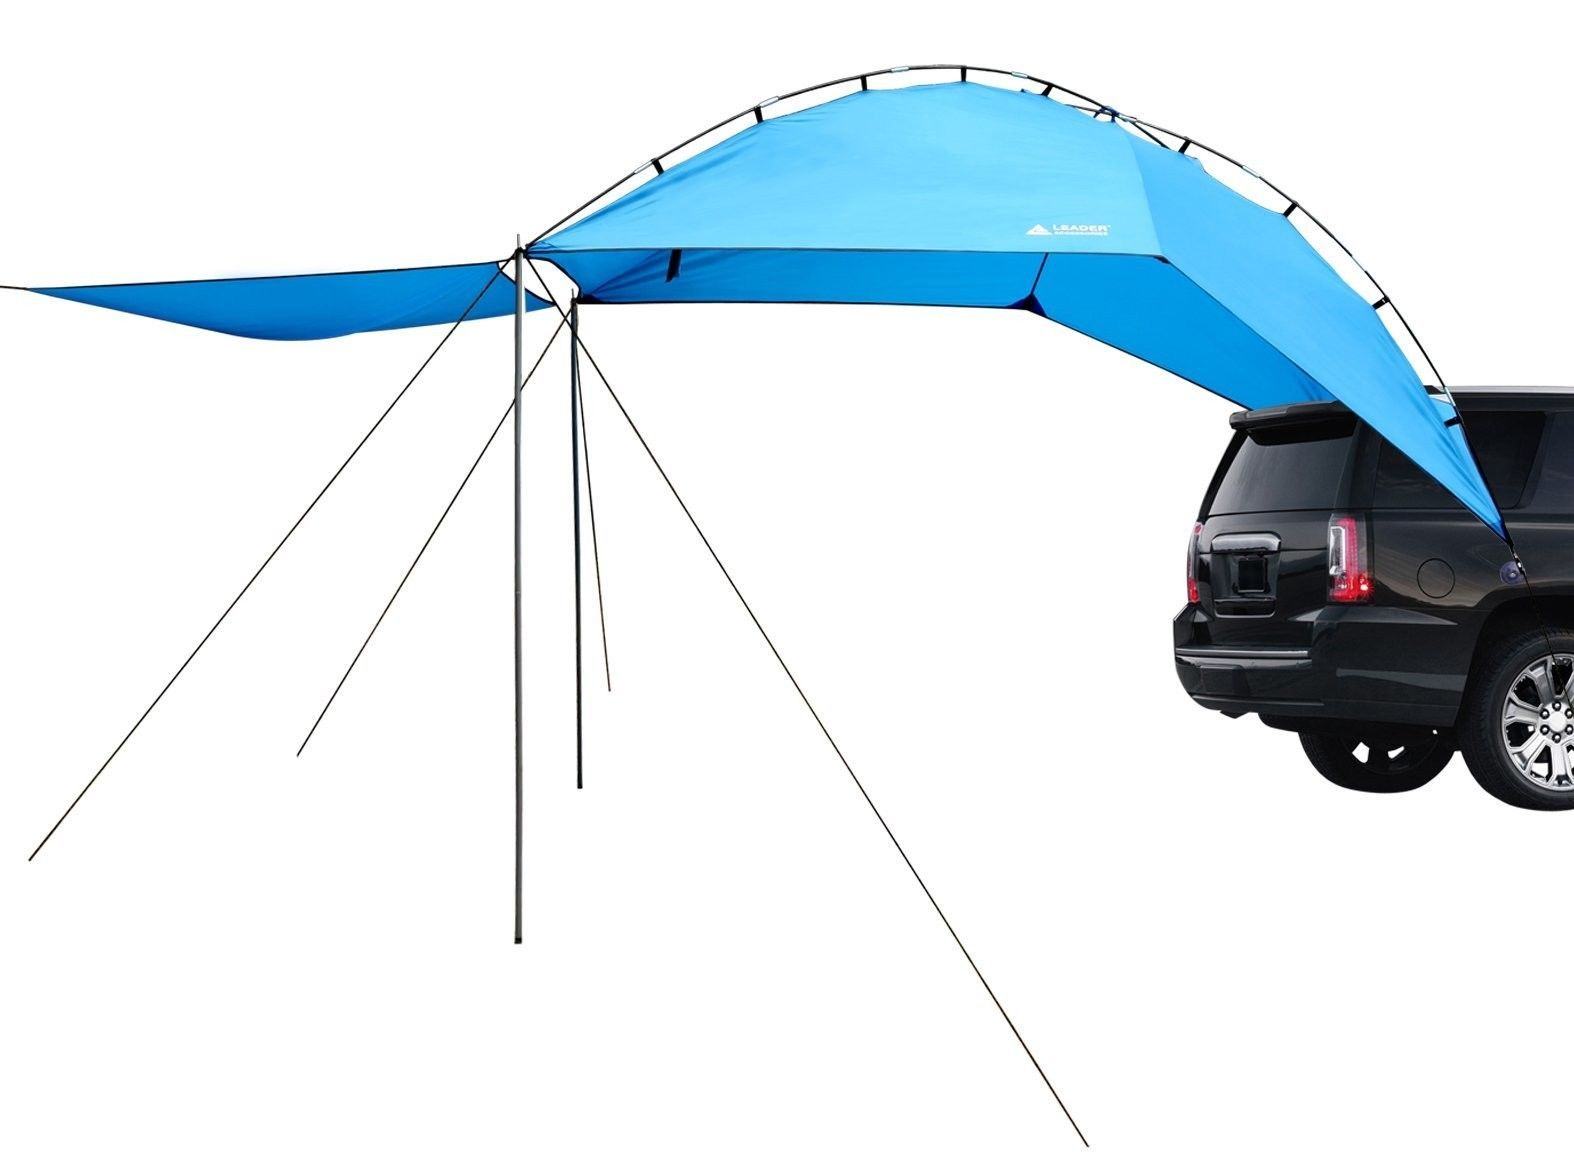 Leader Accessories Easy Set Up Camping SUV Tent/Awning/Canopy/ Sun Shelter Tailg